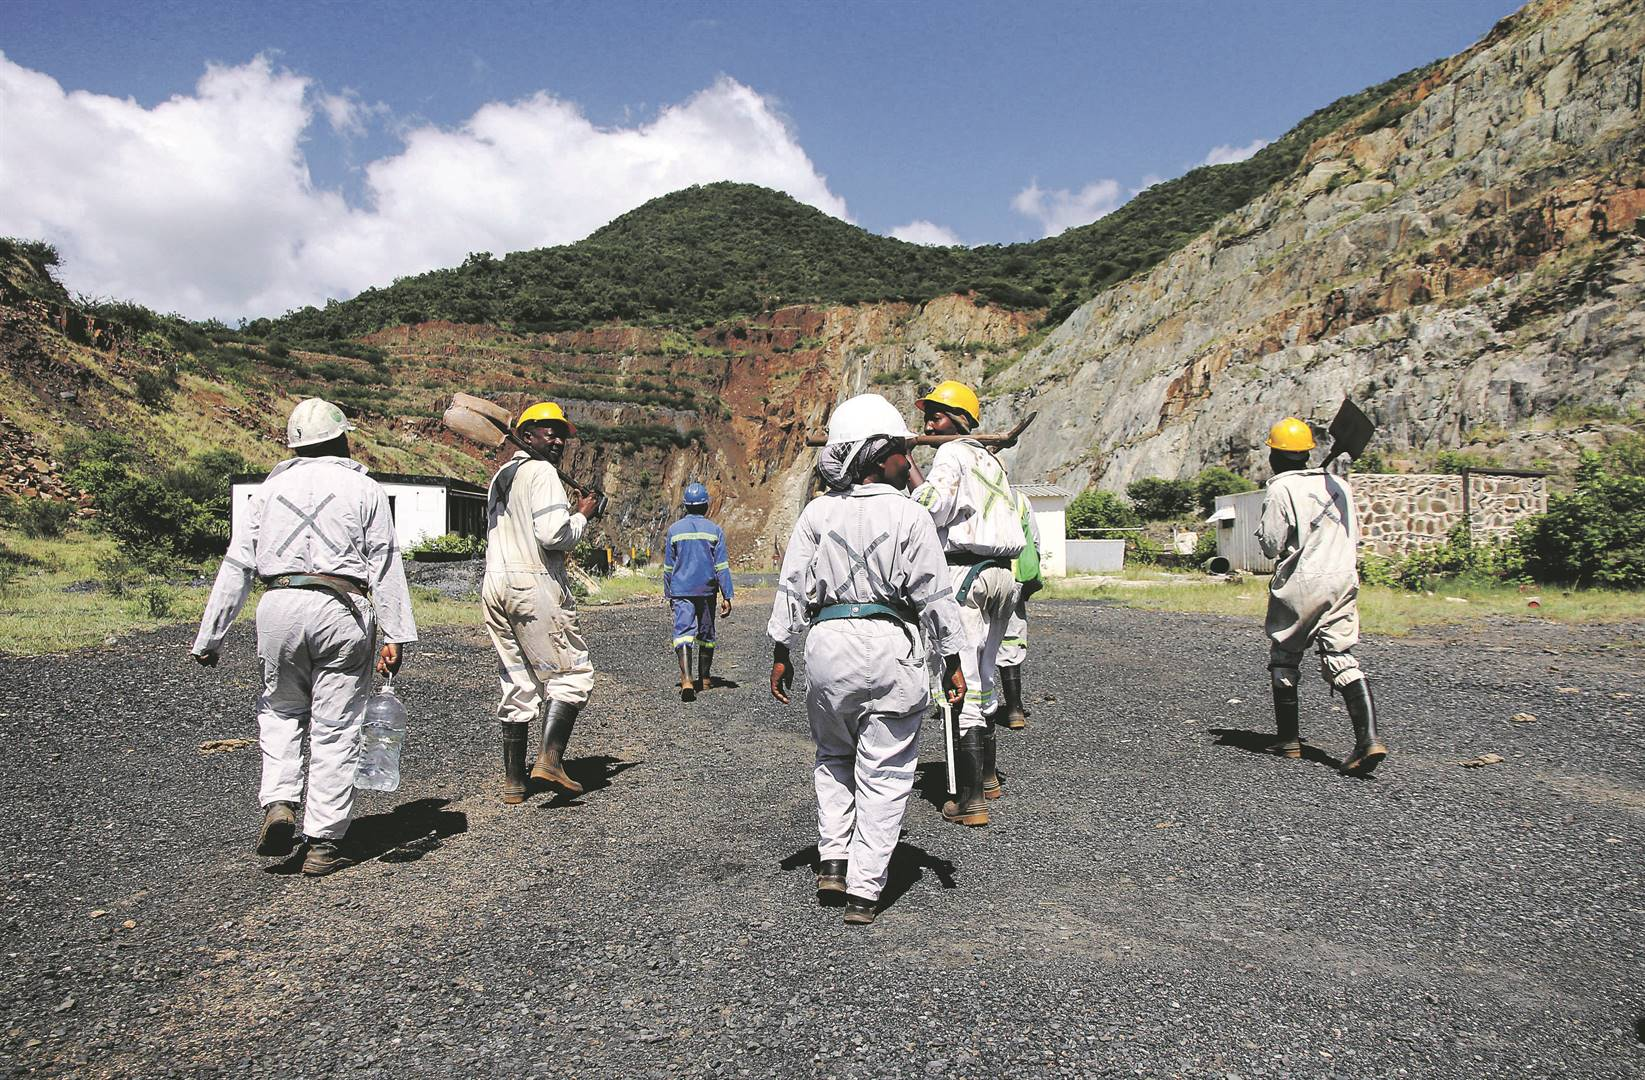 The mines have been under business rescue since they were shut down in 2016 following the collapse of an entrance to Lily mine that buried three workers underground